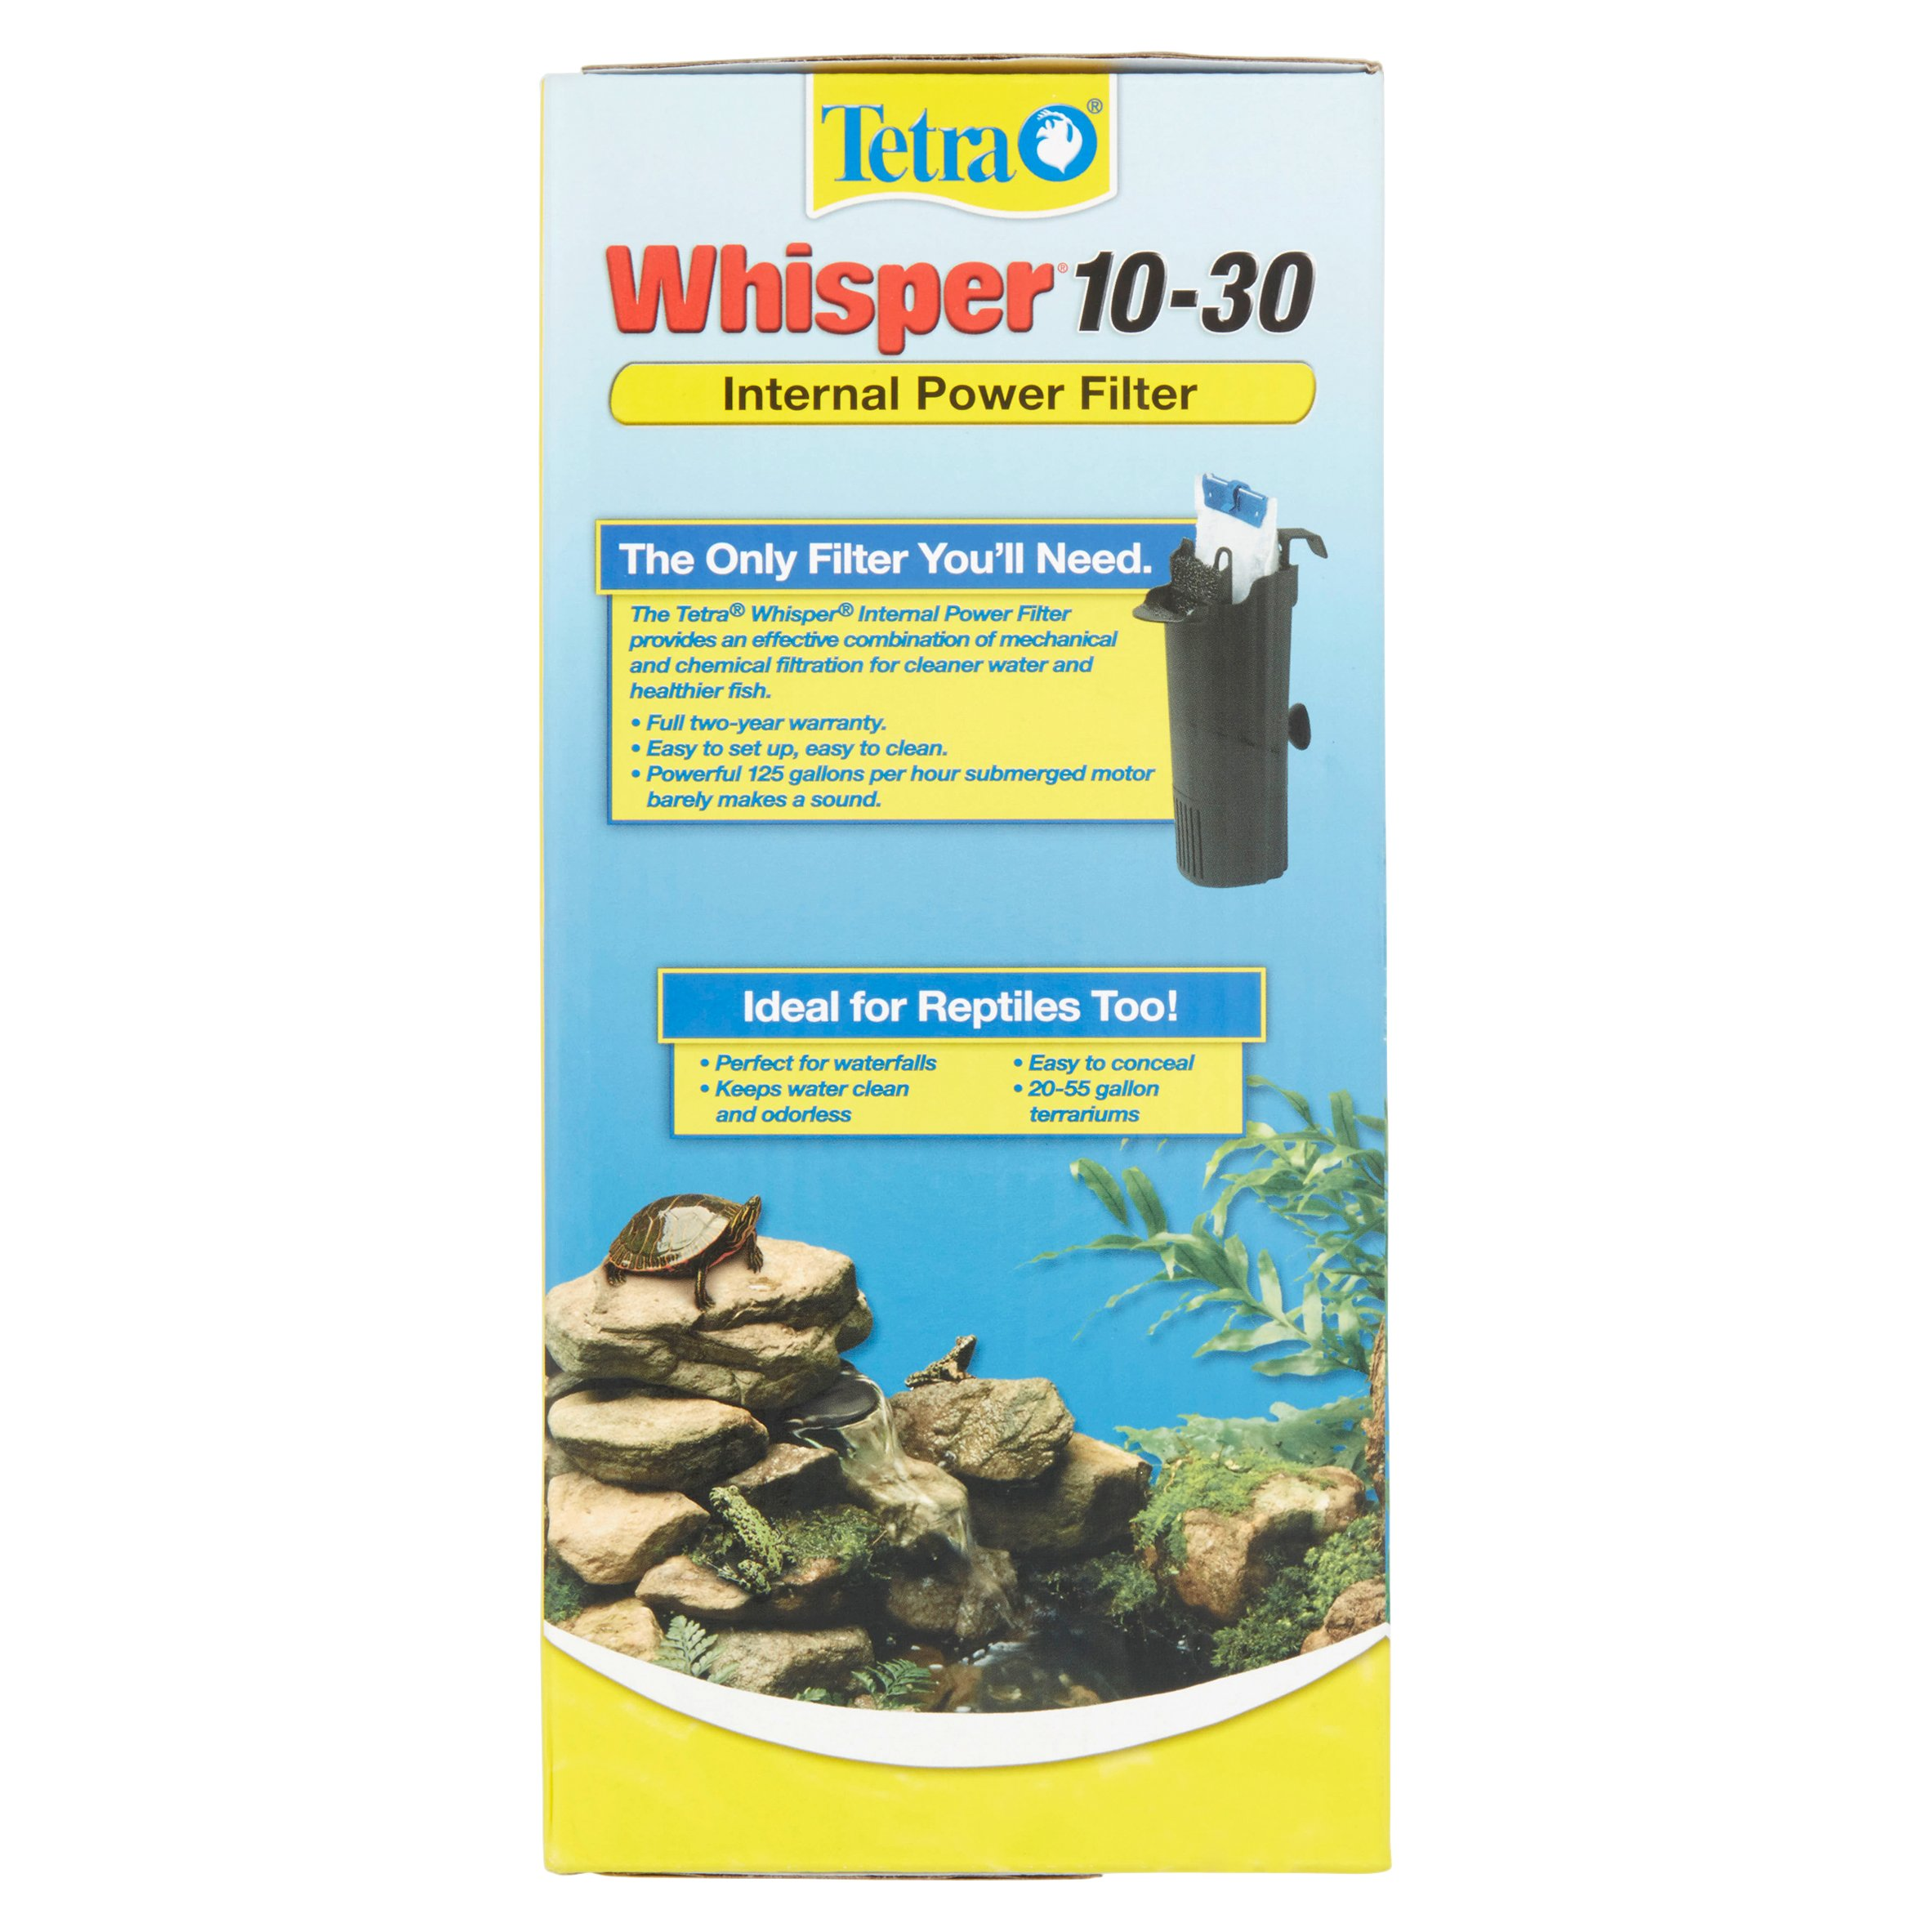 Tetra Whisper 10 30 Gallon Internal Power Filter for Aquariums